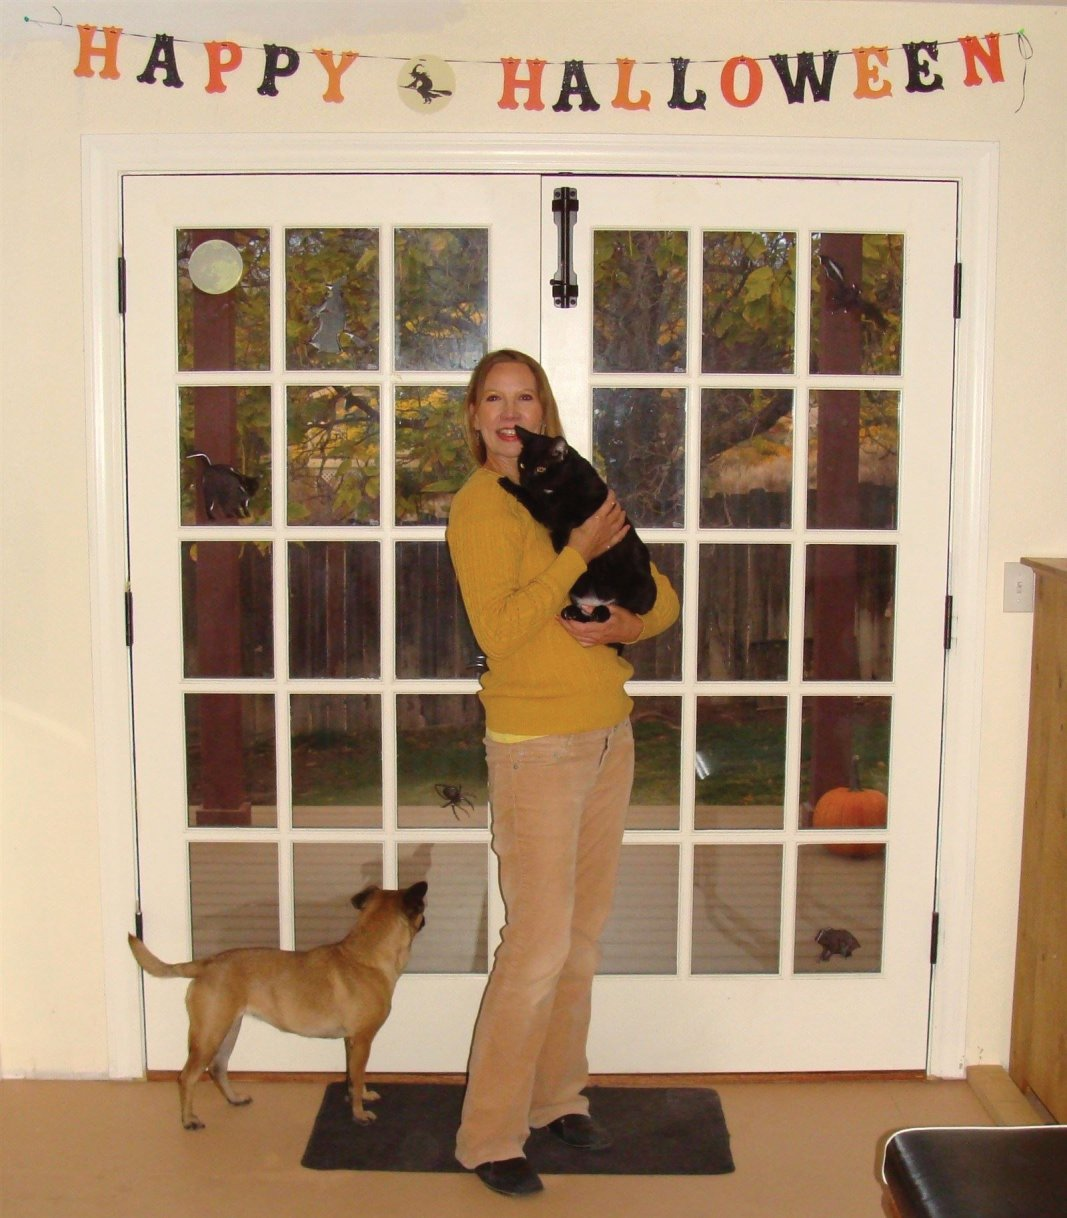 Cat Book Author with Halloween Creatures (2012)